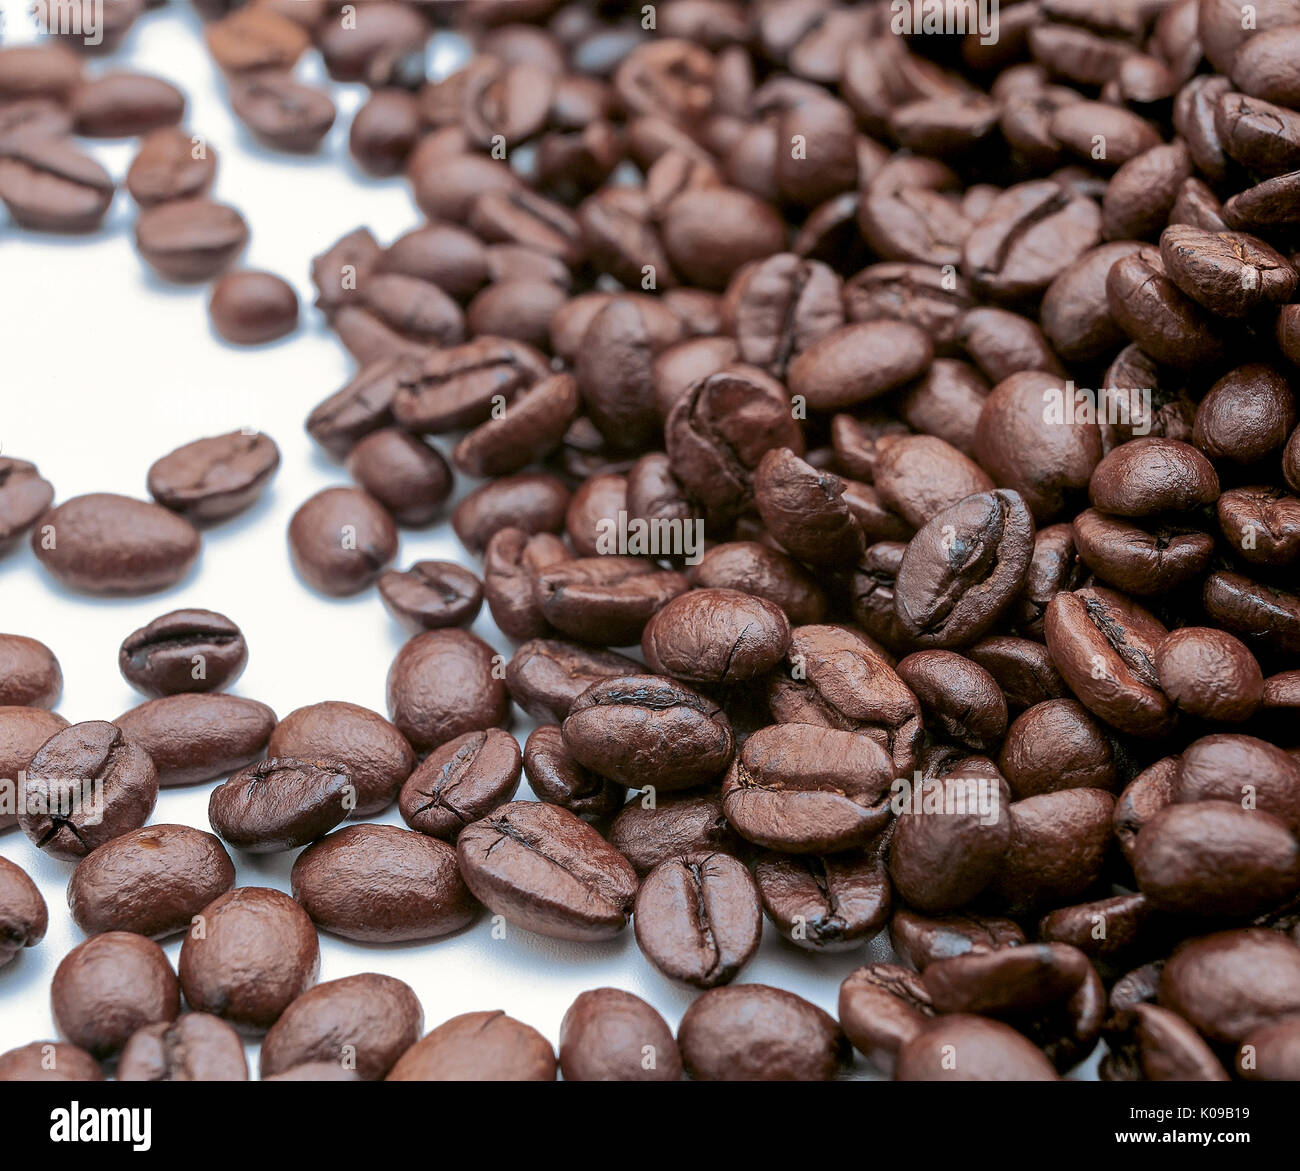 Coffee beans after being roasted - Stock Image